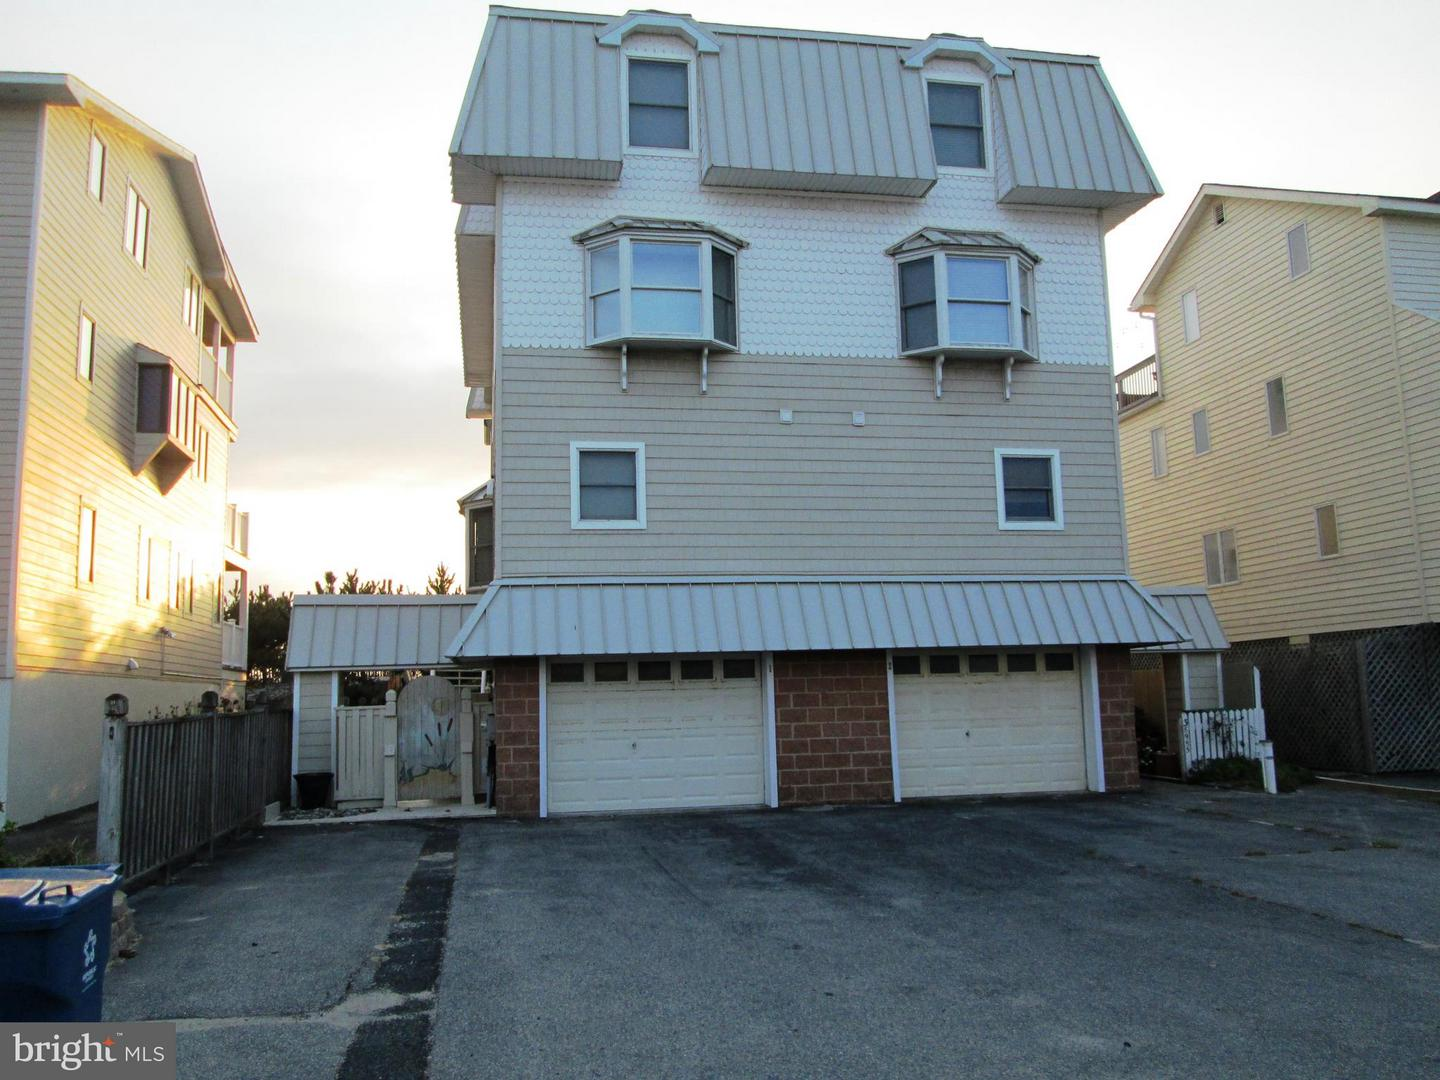 1009972274-300920562321-2018-10-22-09-17-09 38955 Bunting Ave #north Unit | Fenwick Island, DE Real Estate For Sale | MLS# 1009972274  - 1st Choice Properties